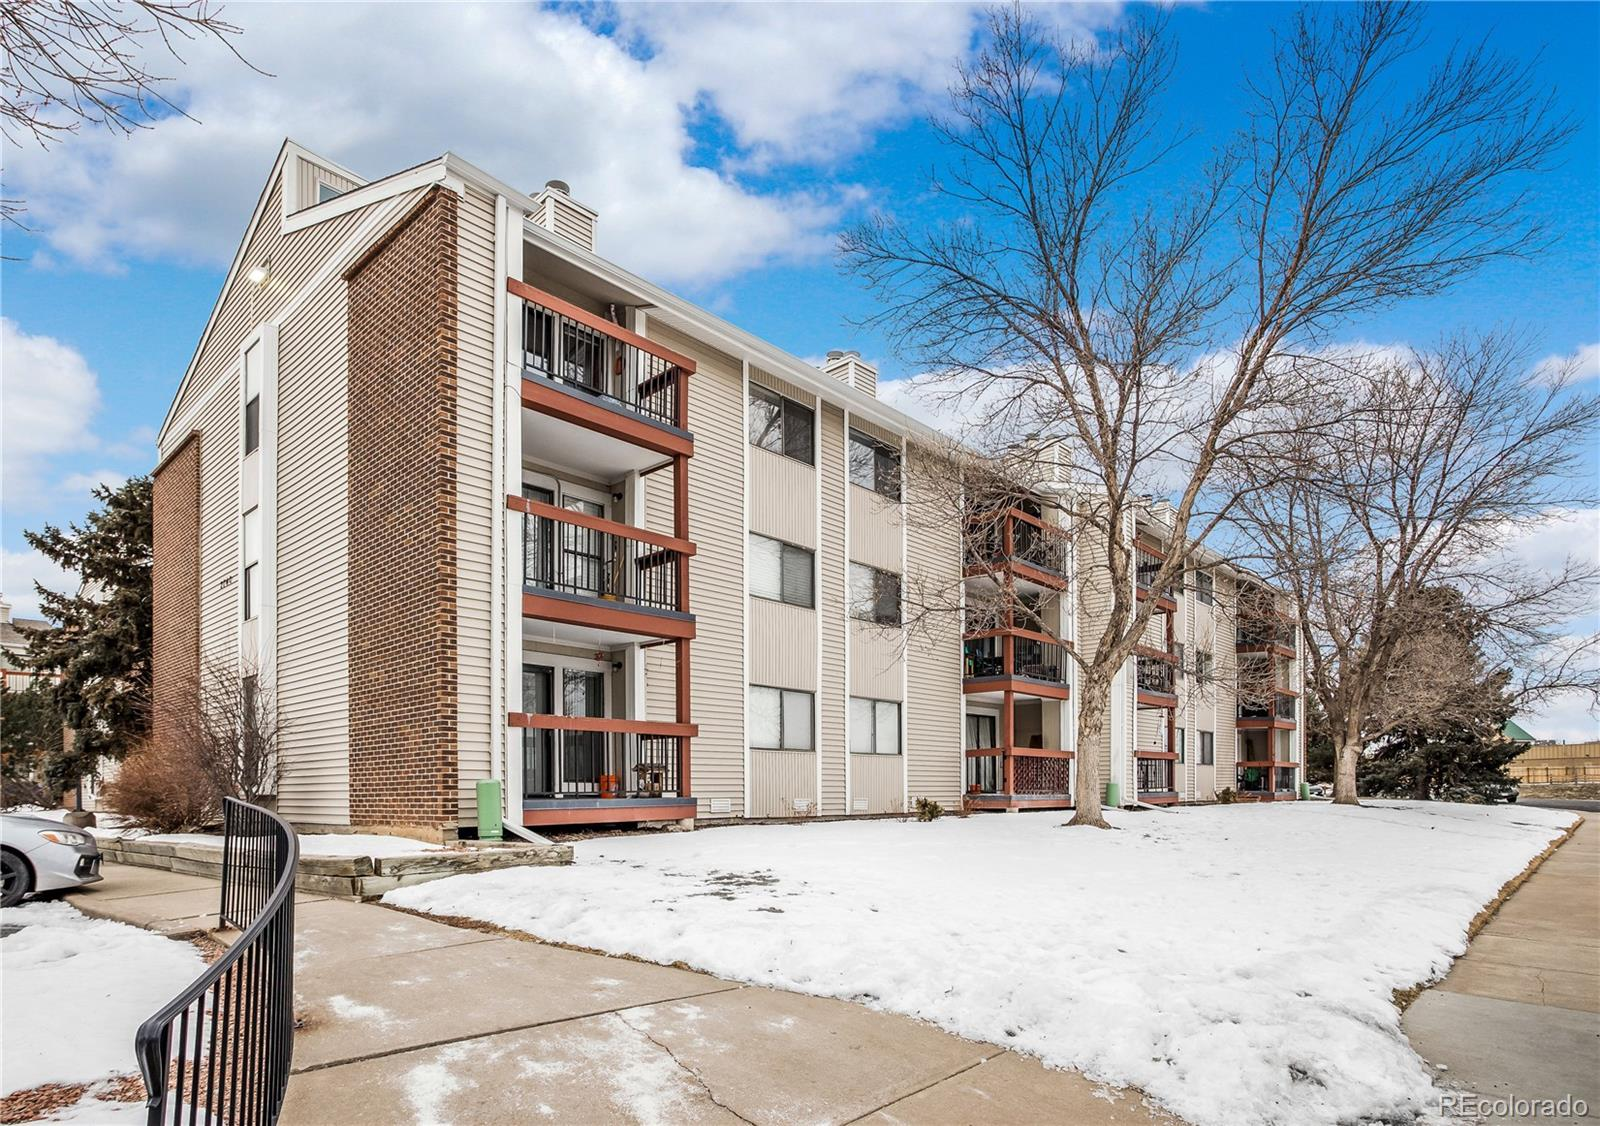 Wonderful remodeled ground floor 3-Bedroom with mountain views*Updated kitchen offers white cabinets with modern hardware, new countertops, new stainless steel sink & faucet*Both bathrooms offer stylish new vanities with marble countertops*Inviting family room with cozy wood-burningfireplace and new slider patio door leading to private balcony with mountain views*Master suite with attached 1/2 bath, large closet & mountain views*Kitchen appliances & washer/dryer included*Newer electrical panel, furnace and central A/C*Fresh paint throughout*Permit parking for two cars plus plenty of street parking with easy condo access through gate on balcony*Great storage in the crawl space accessed through hallway closet*Community playground, tennis and basketball courts directly across the street*Great location with easy access to Highway 36, I-25 & multiple light rail stops*Tremendous value for a 3-bedroom*Come see it before it's gone!